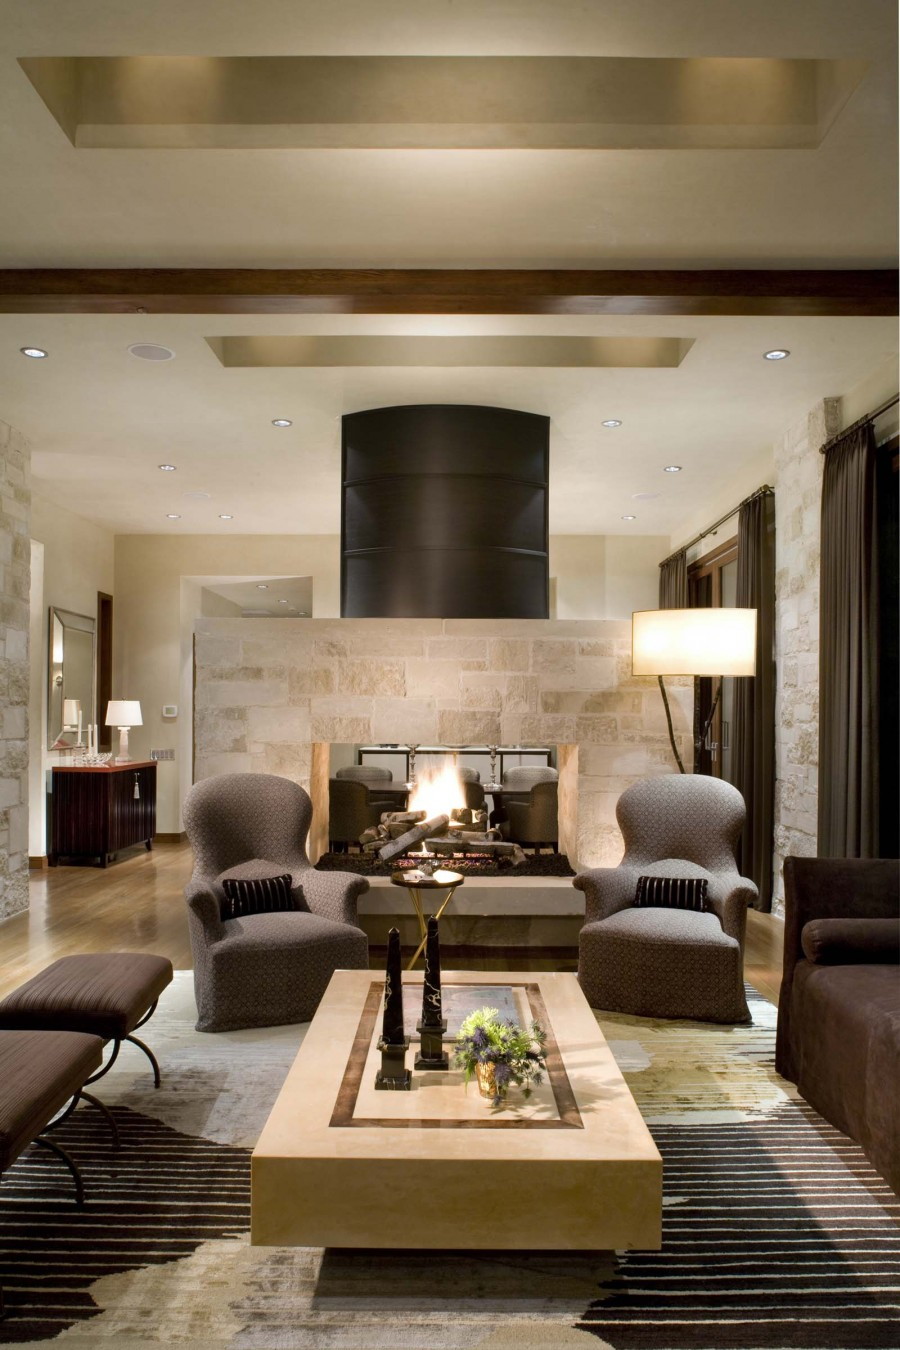 16 fabulous earth tones living room designs decoholic Earth tone living room decorating ideas